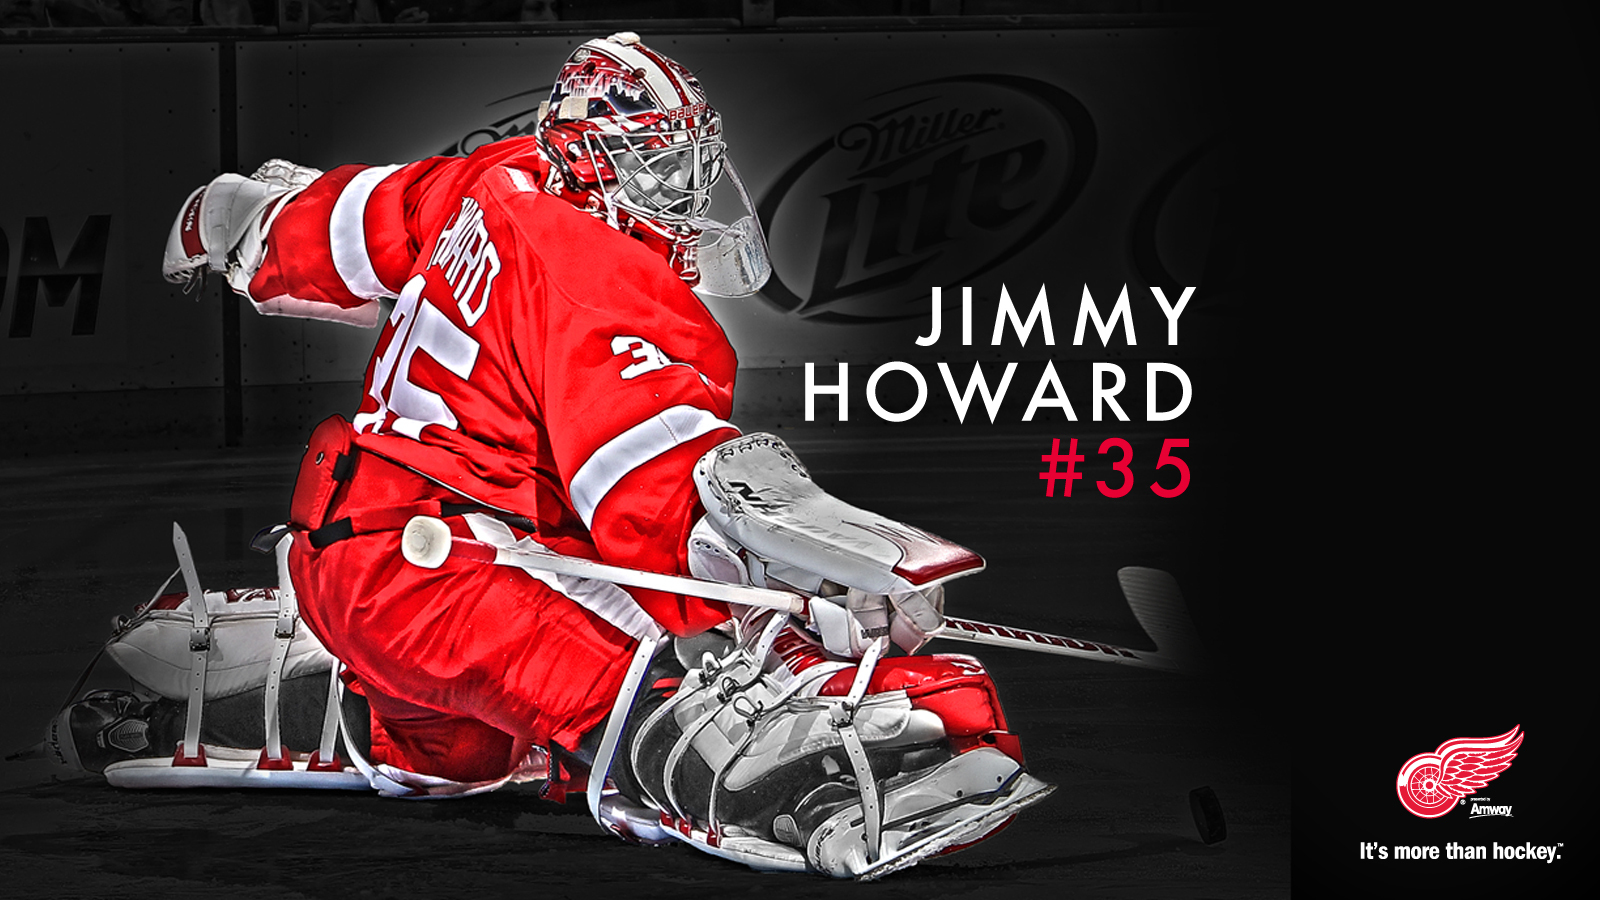 Jimmy Howard Wallpaper 1600x900